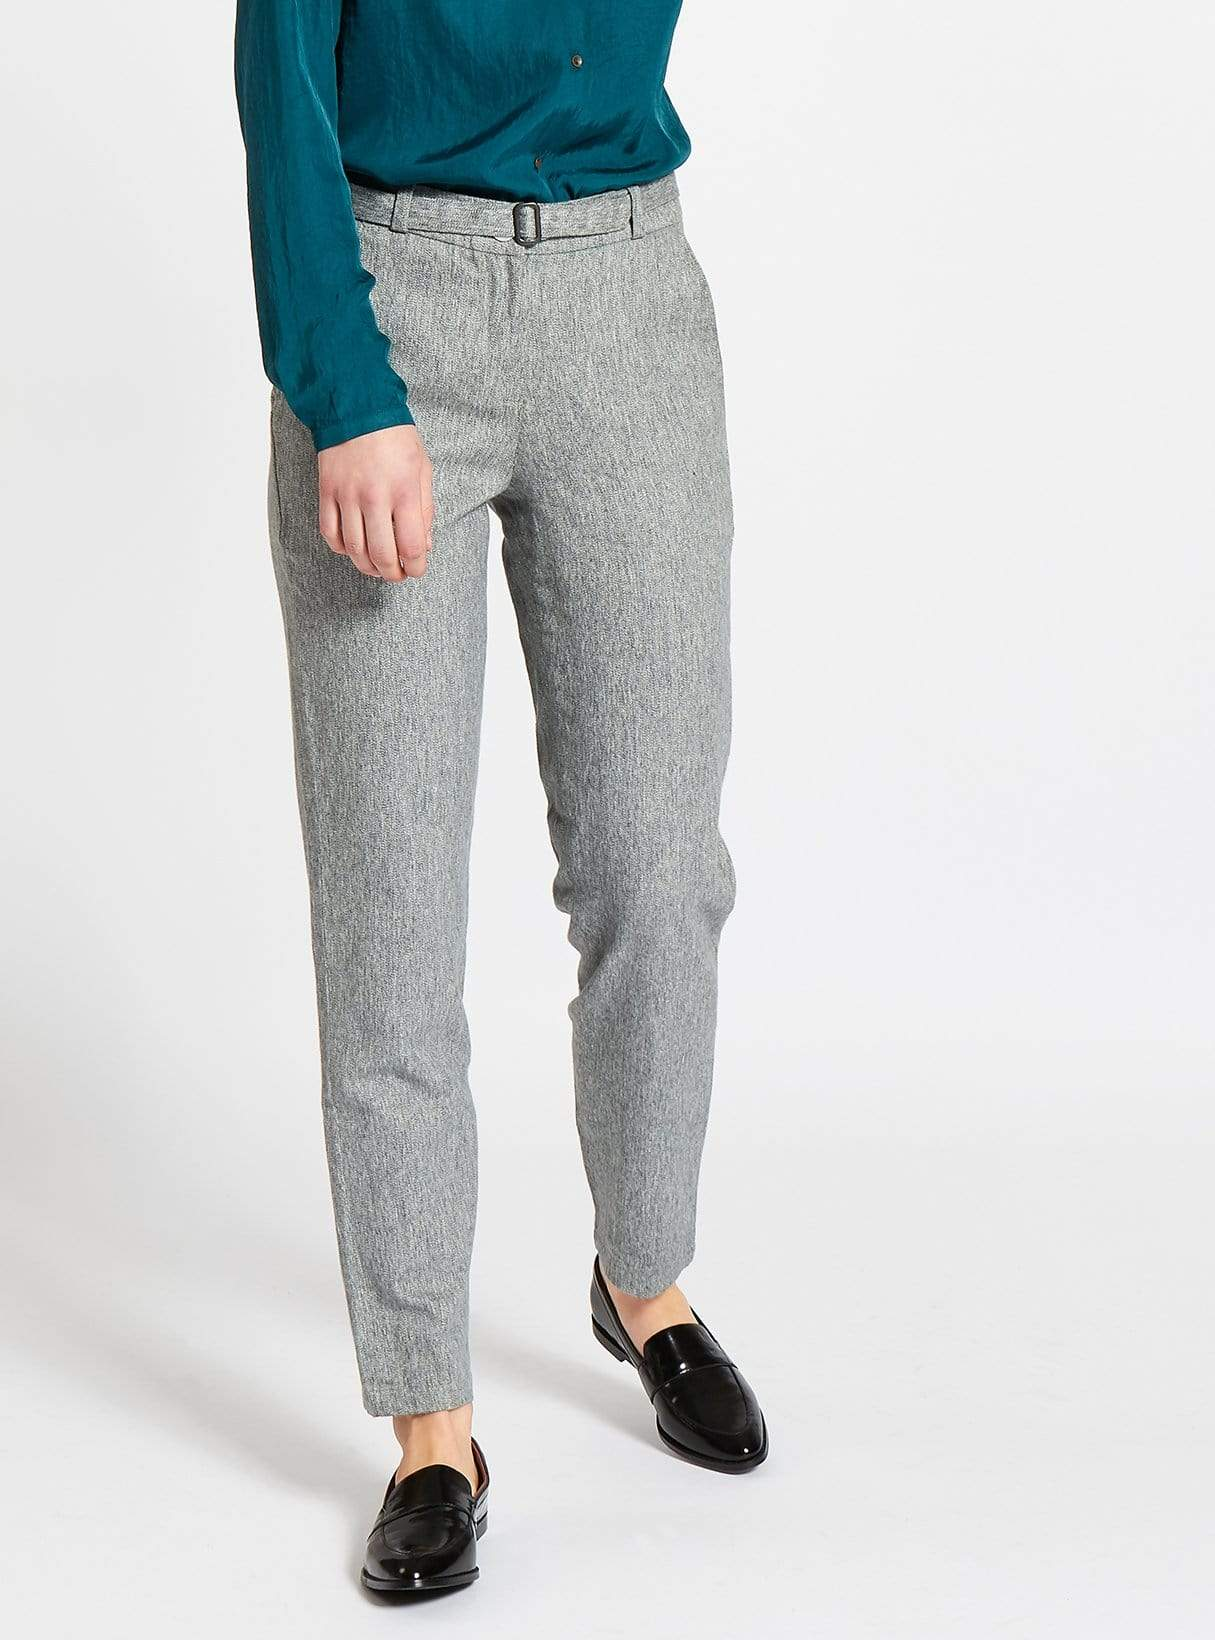 Belted formal cotton trousers - grey/green melange